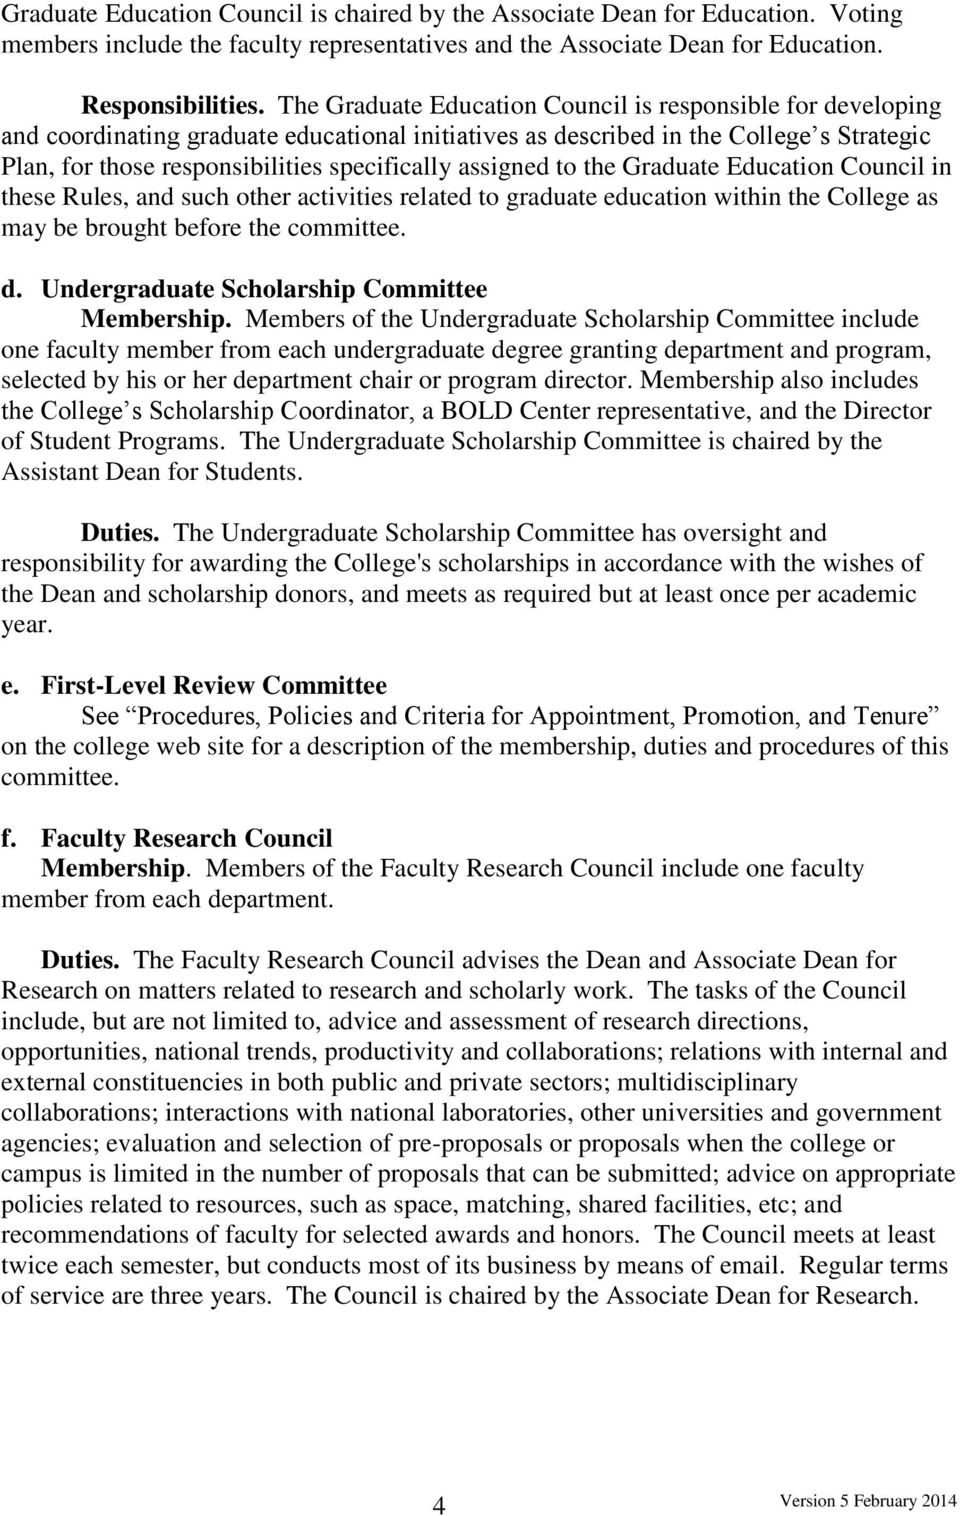 assigned to the Graduate Education Council in these Rules, and such other activities related to graduate education within the College as may be brought before the committee. d.